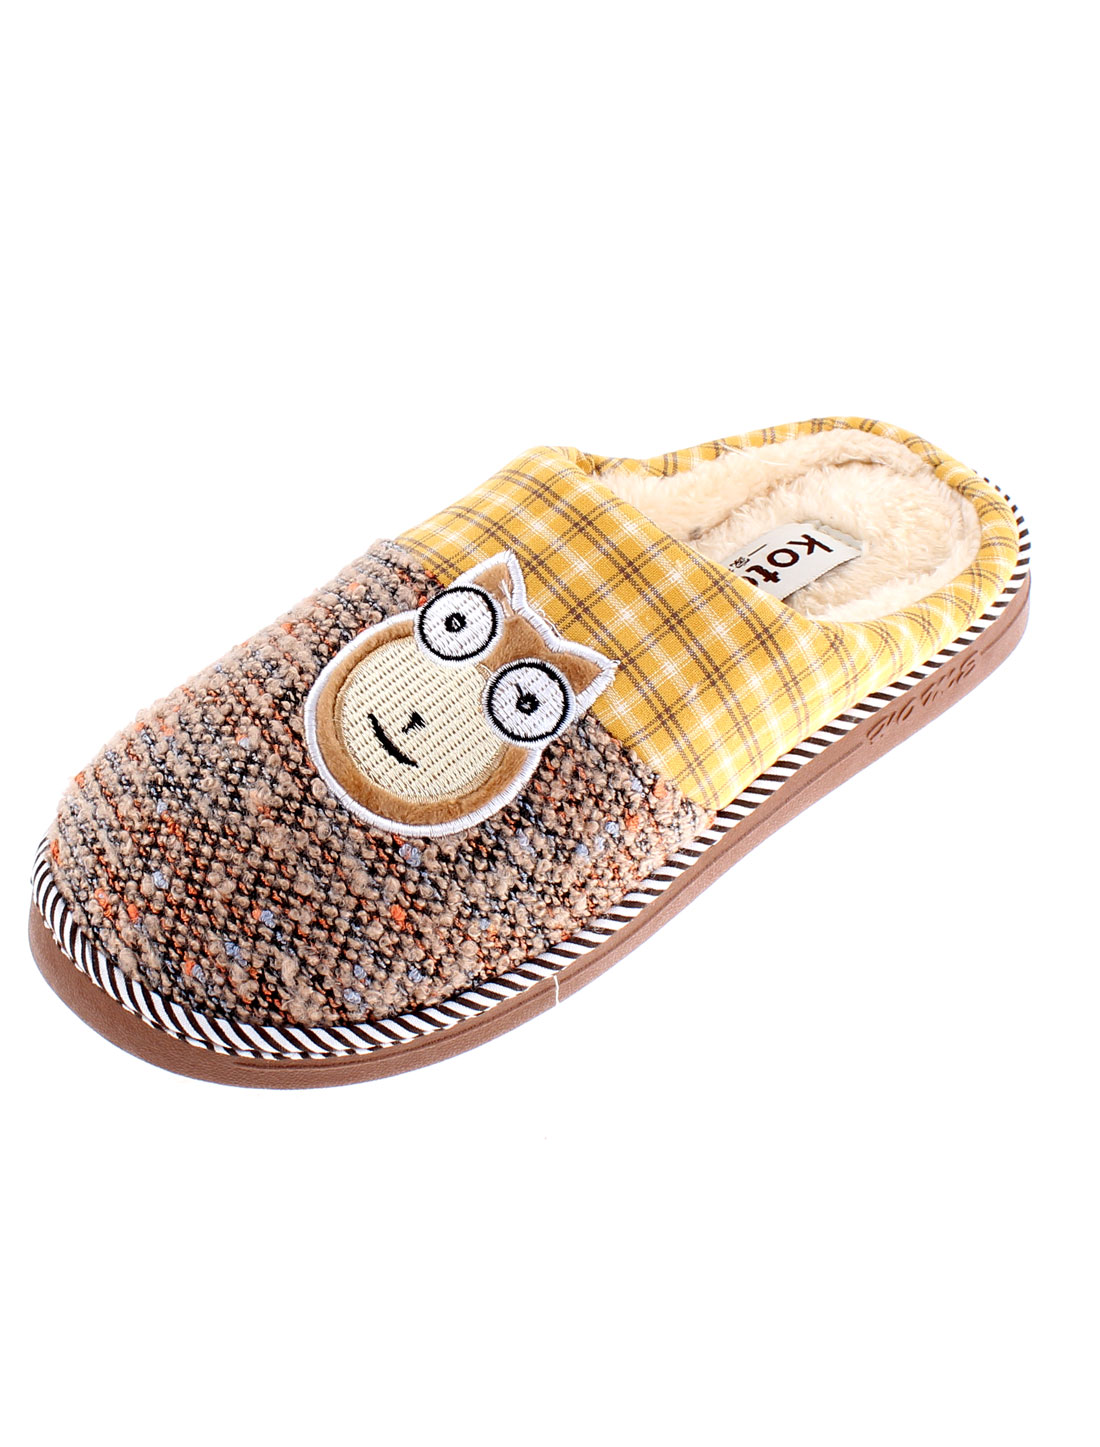 Home Cat Embroidery Anti Slip Casual Warmer Slippers for Women Brown US 8.5